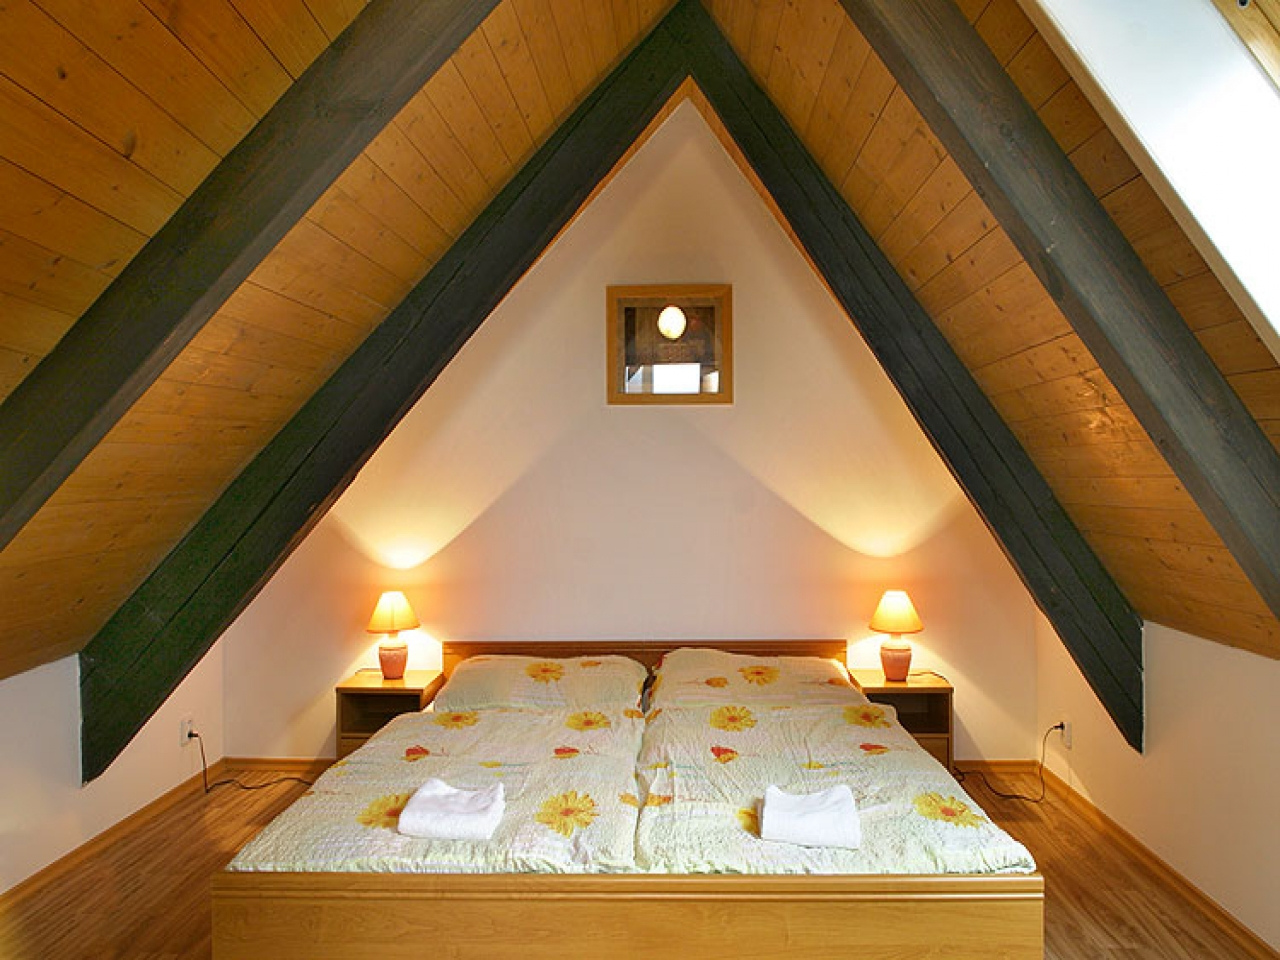 Attic Bedroom Storage Ideas Tiny Low Ceiling Faeeddbb Surripui regarding measurements 1280 X 960